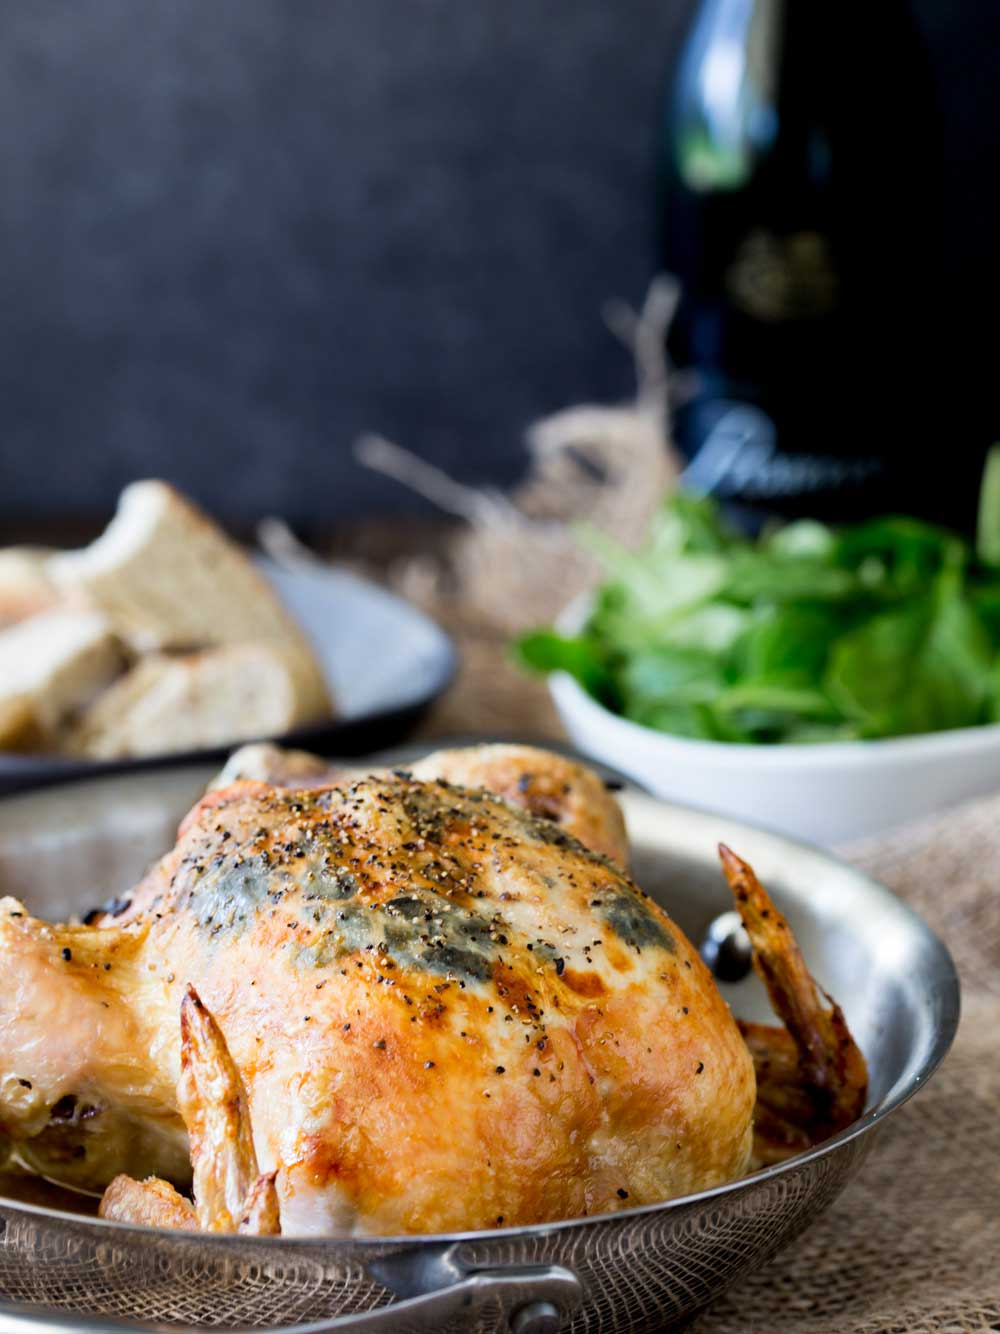 Crisp chicken skin, succulent juicy meat and the rich earthy flavour of black truffle. This black truffle roasted chicken is the perfect mix of everyday comfort and extravagance.